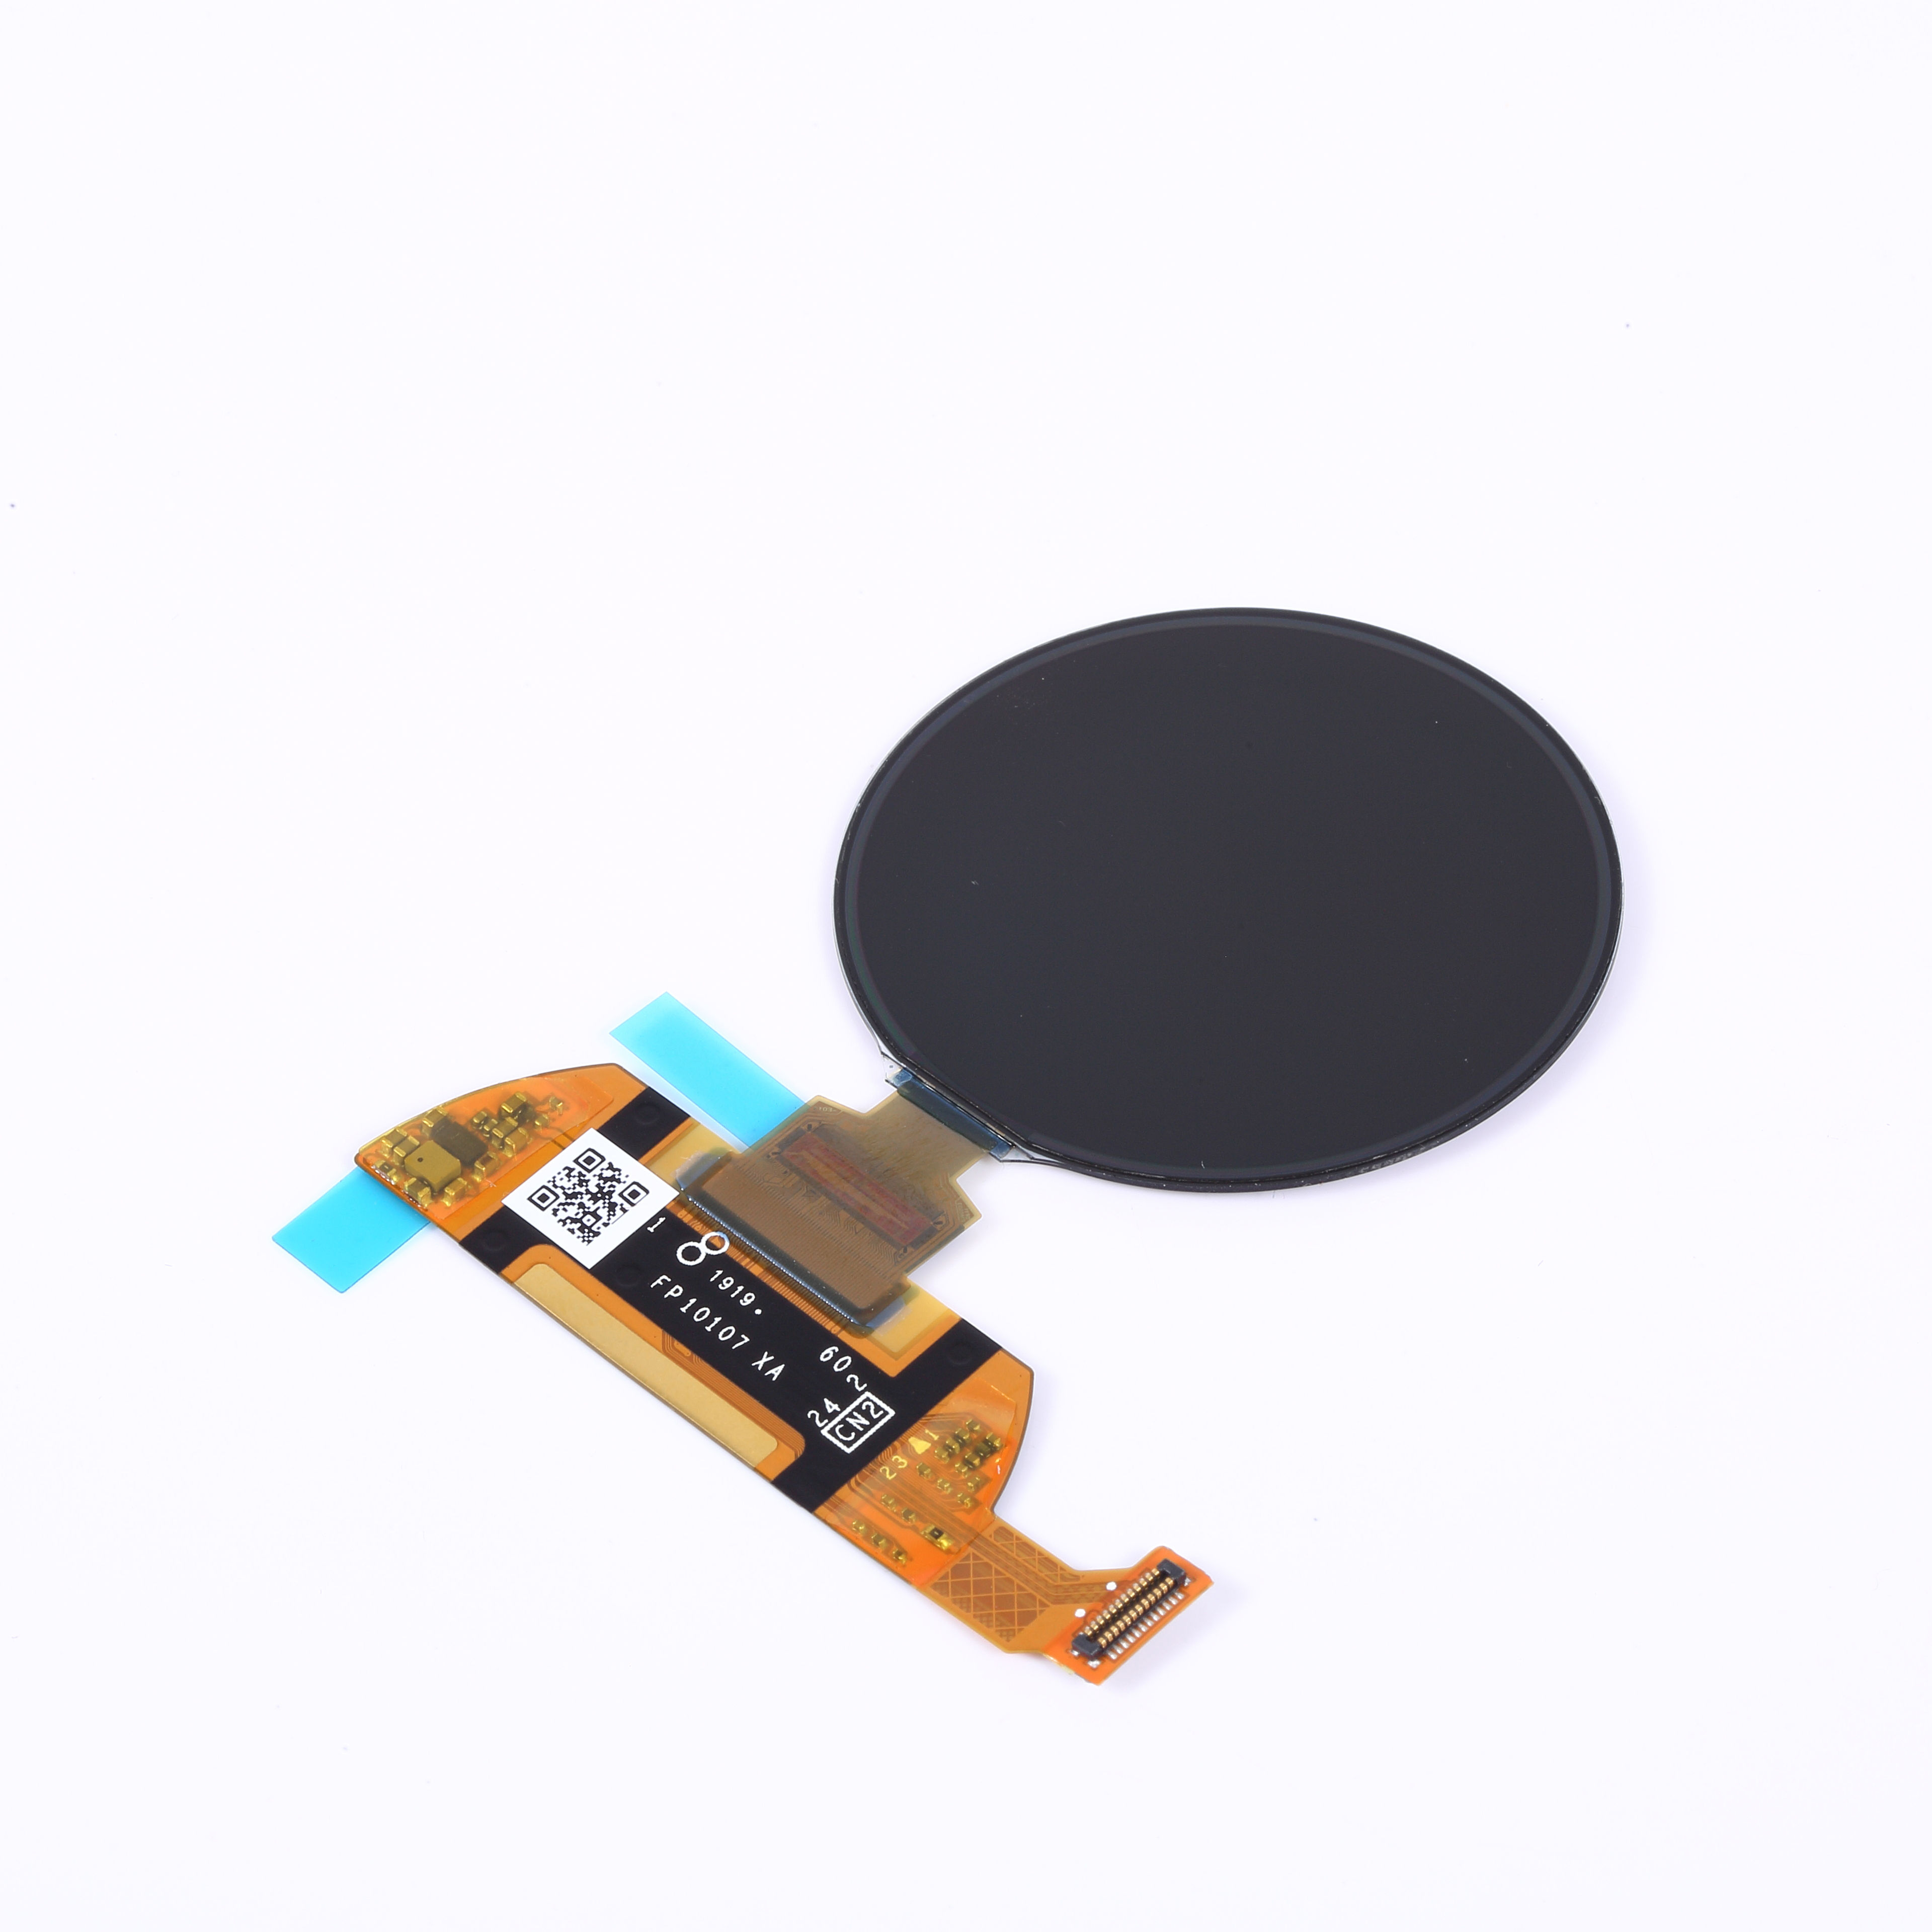 Circular AMOLED sunlight readable 1.39 inch 454*454 MIPI SPI Interface with touch board smart watch pop oled display lcd display